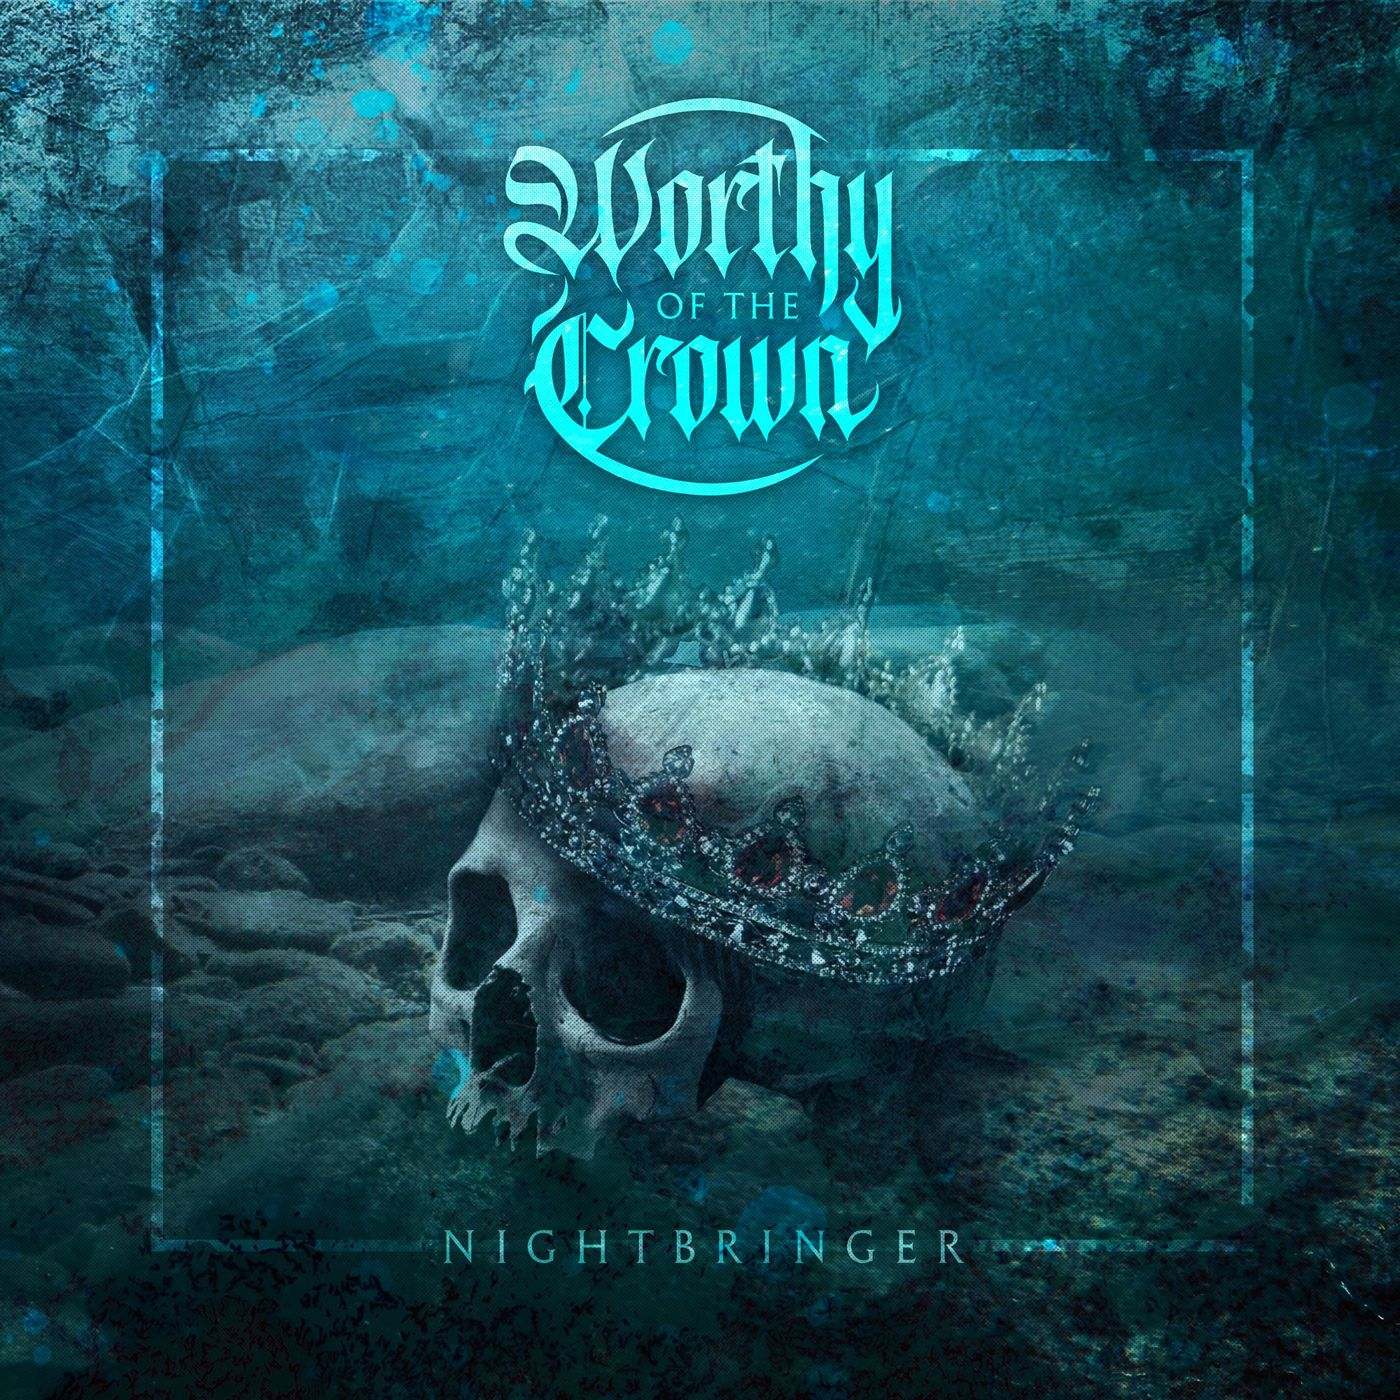 Worthy of the Crown - Nightbringer [single] (2020)